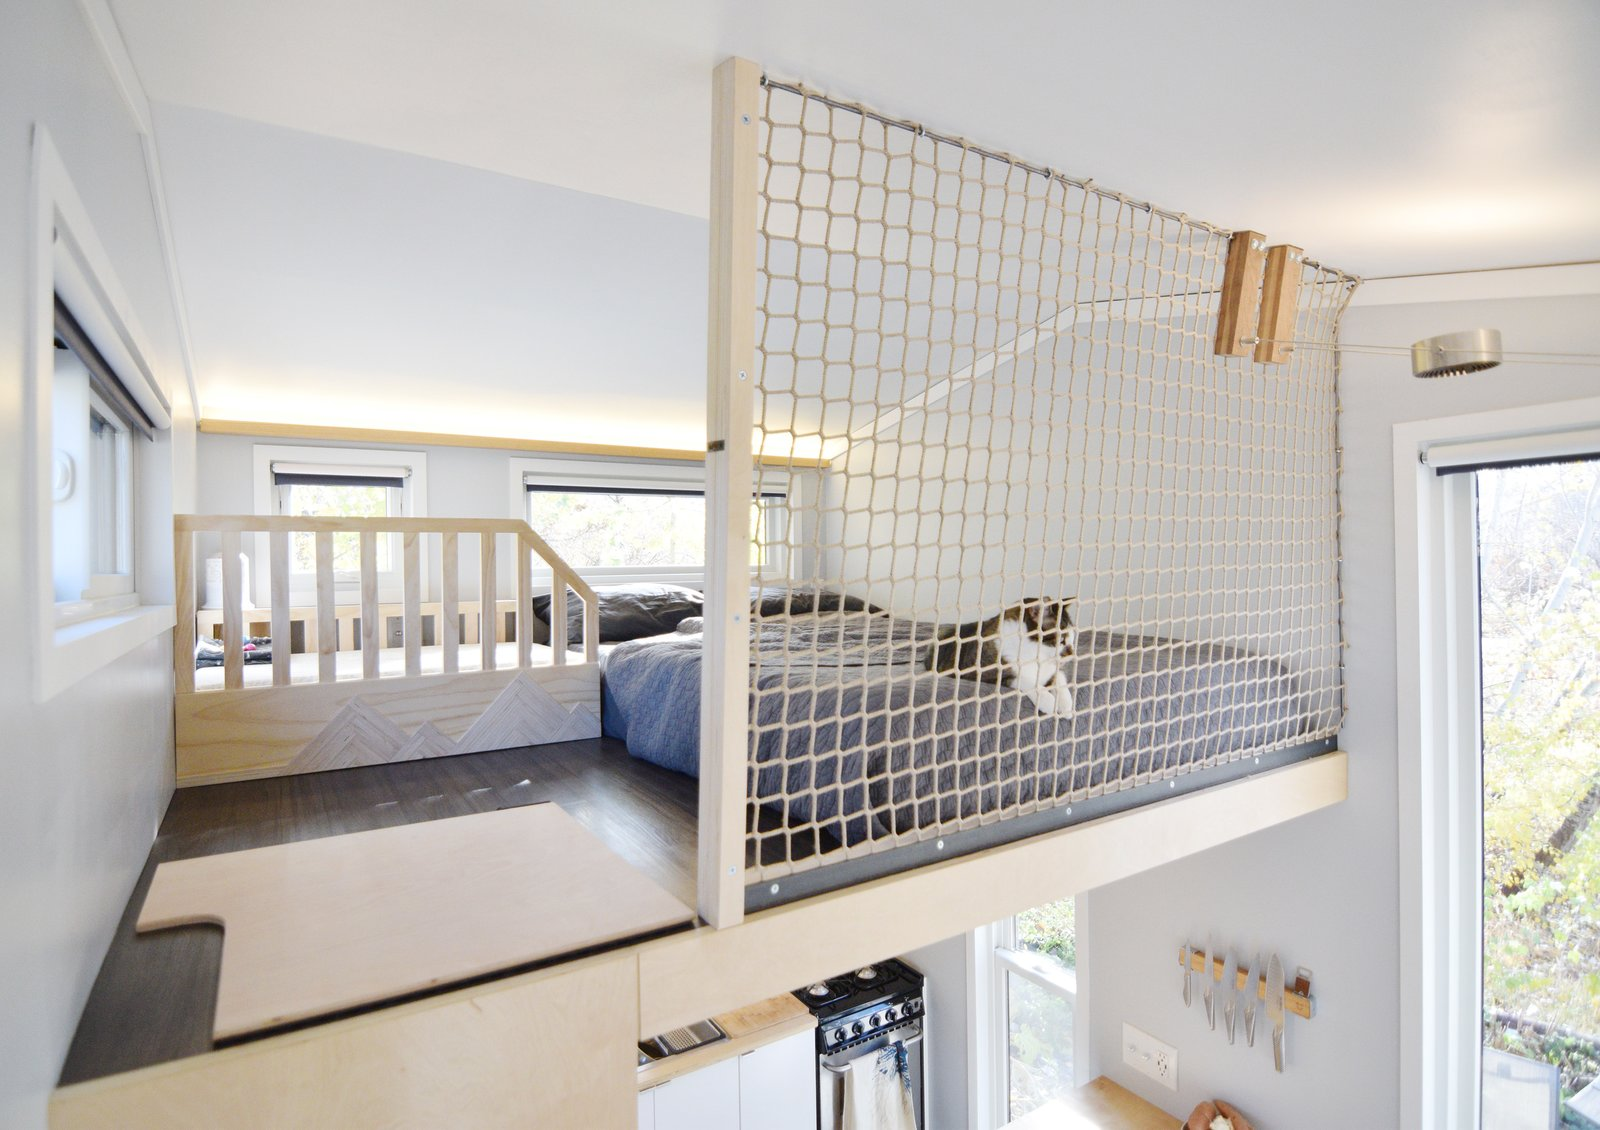 when it came time to add a safety barrier for their daughter Aubrin, they opted to install tight netting so the two areas did not need to be visually separated.